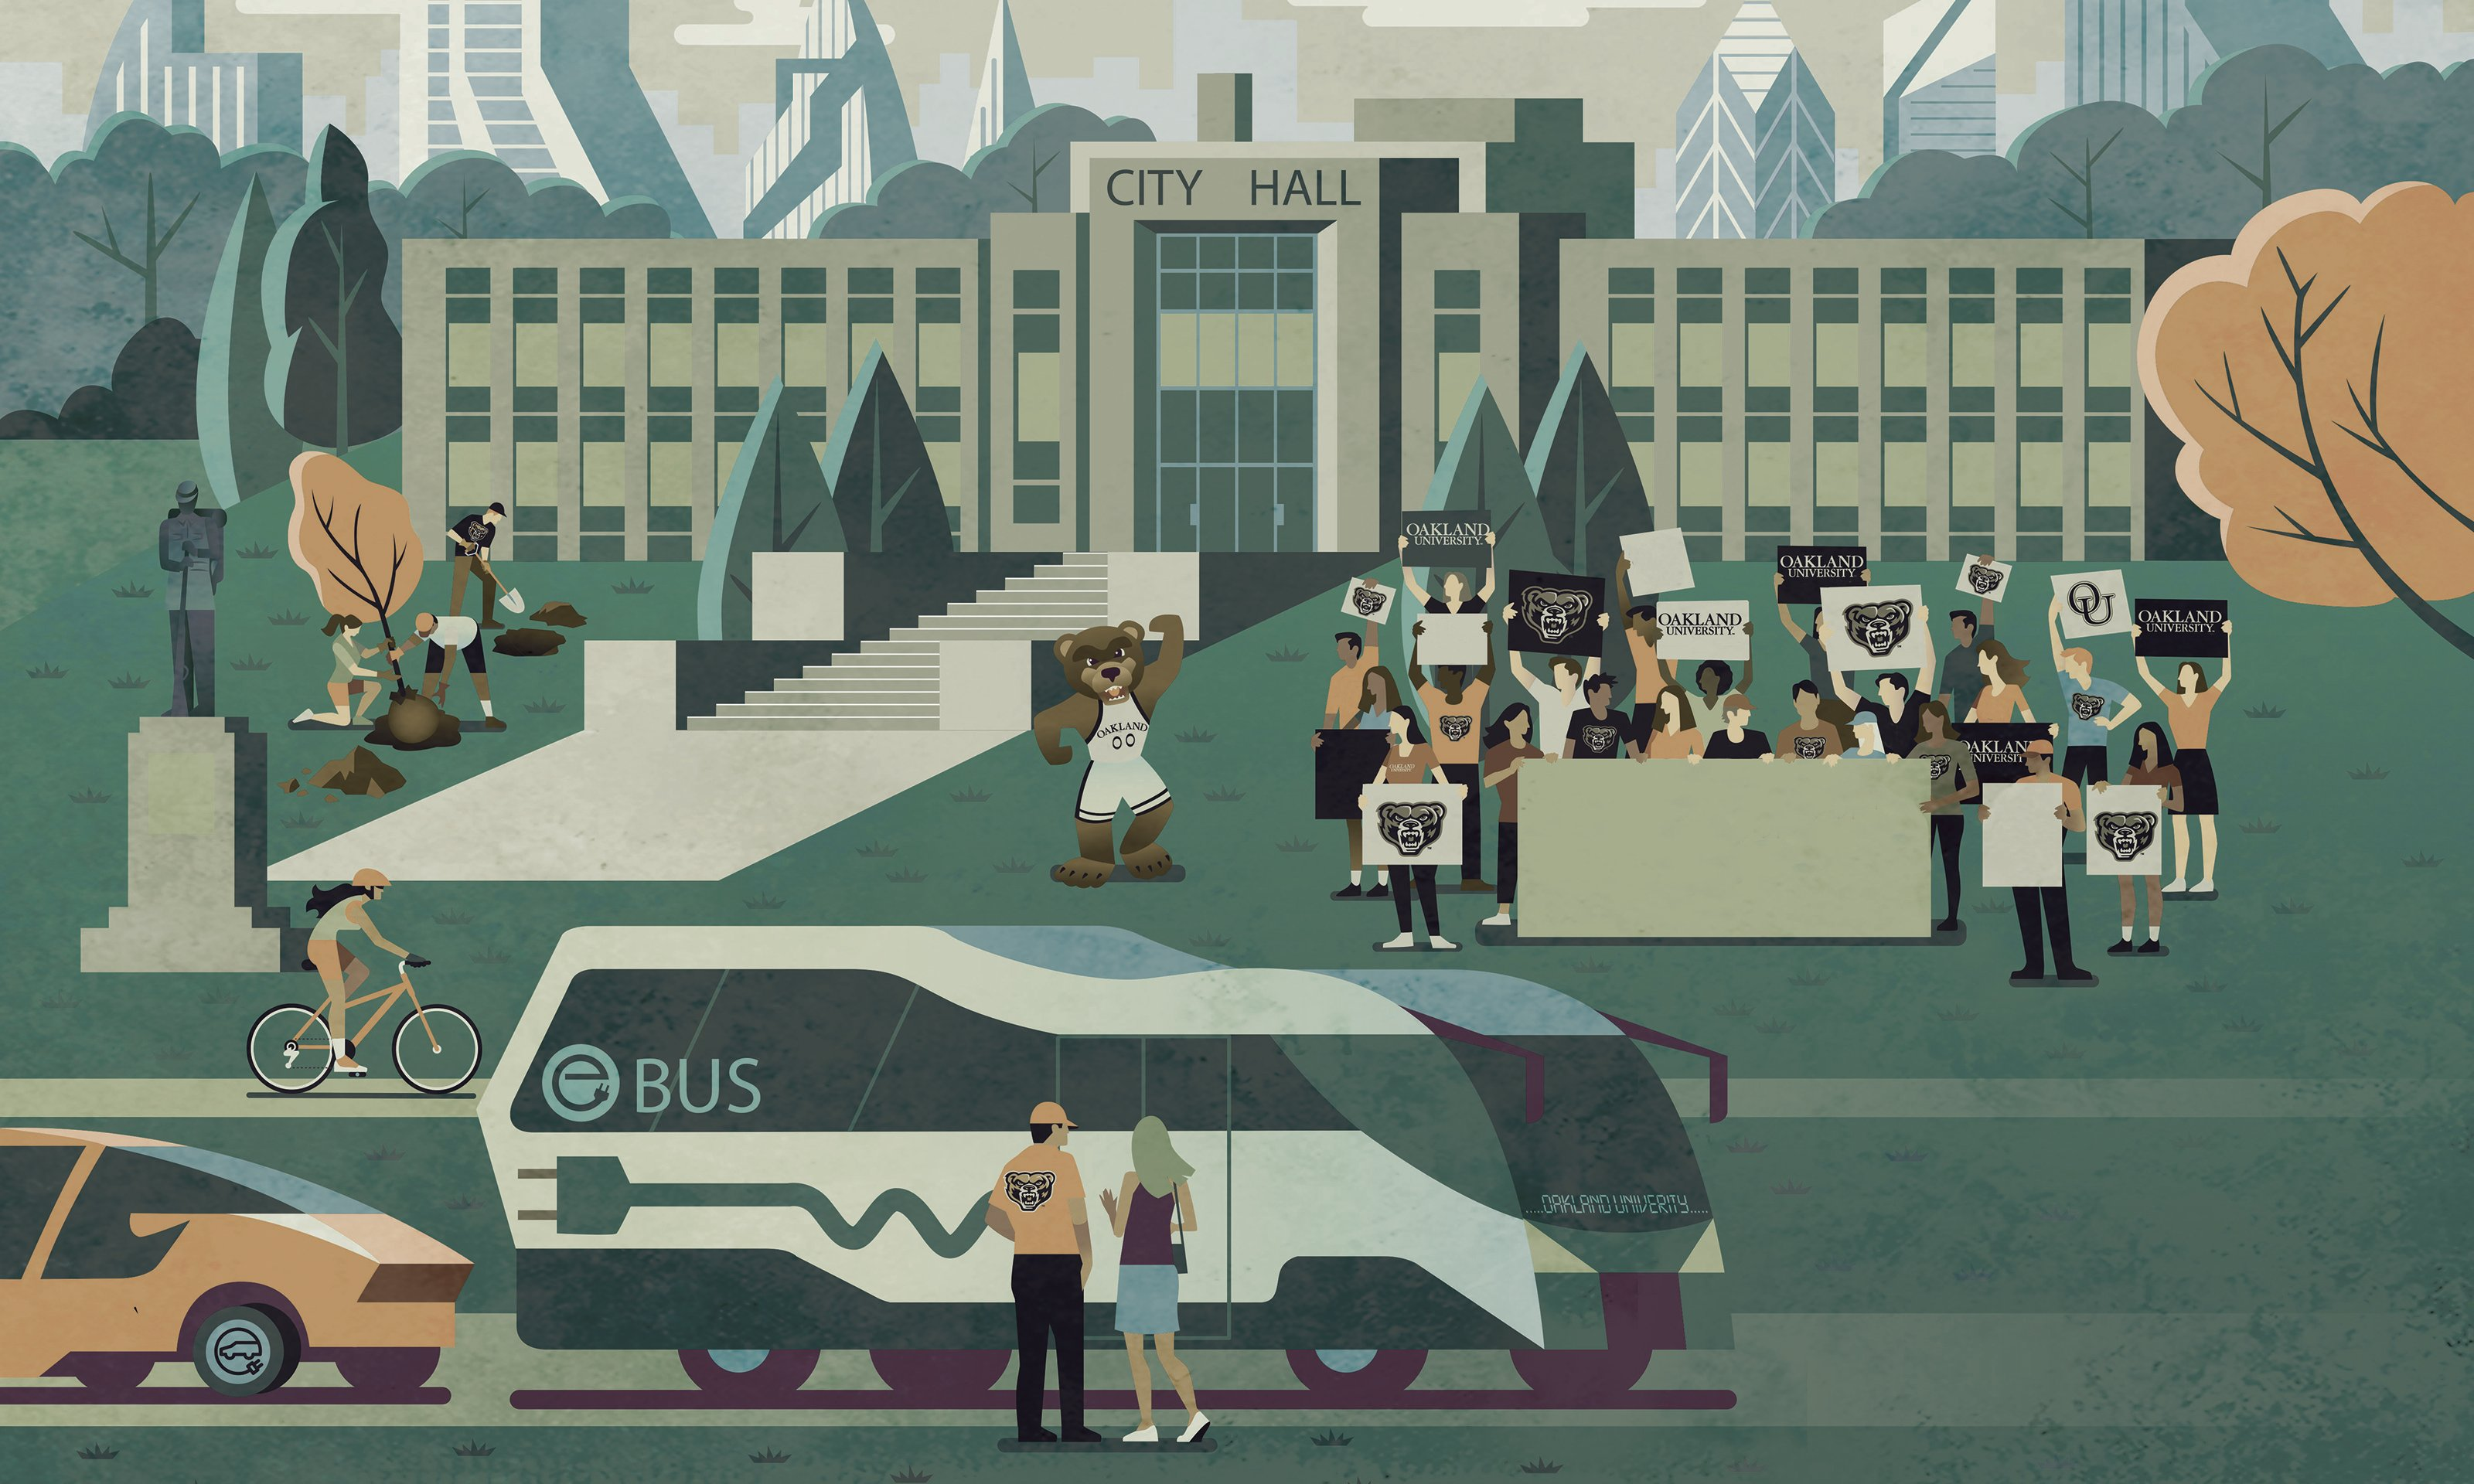 Illustration of Pontiac City Hall with OU students and grizz bear cheering outside. People planting trees to the right and bus and cyclist in the foreground.